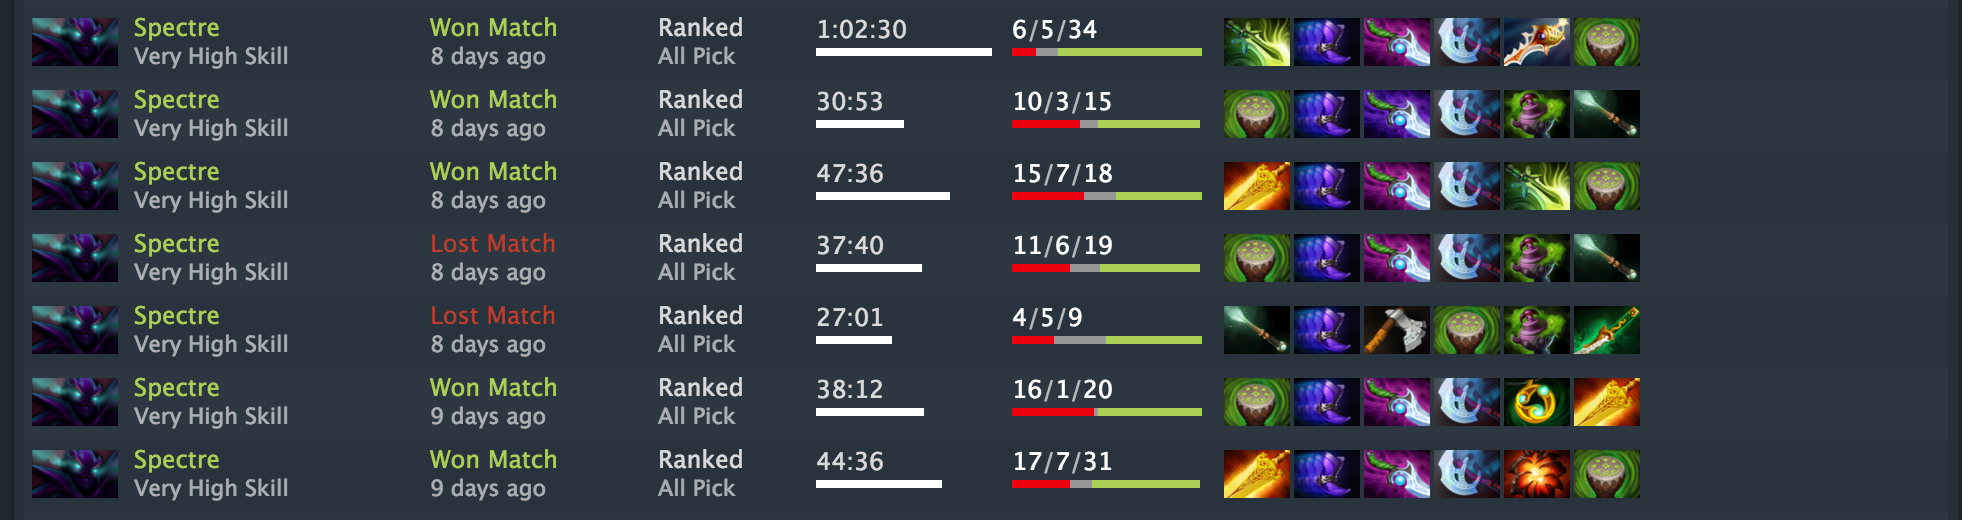 Banning In All Pick A Higher Standard Of Ranked Play DOTABUFF Dota 2 Stats